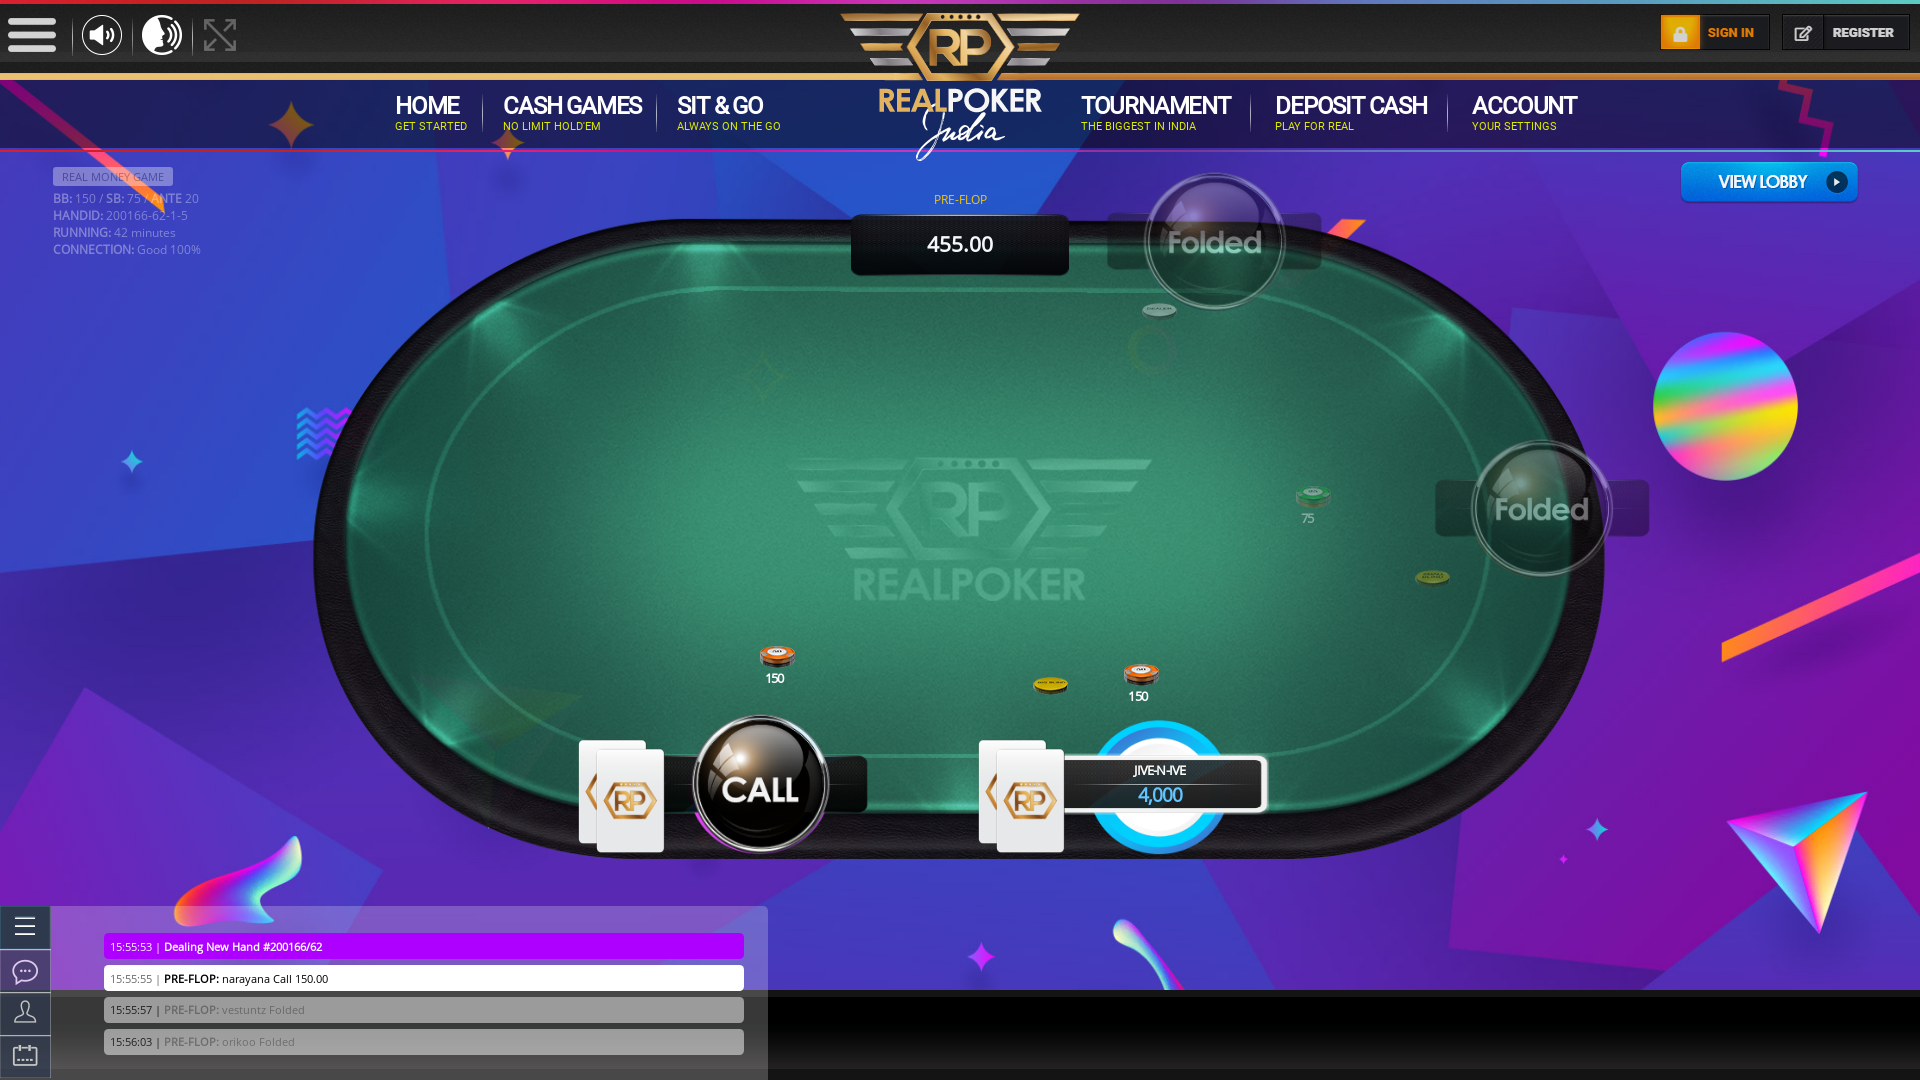 Online poker on a 10 player table in the 42nd minute match up